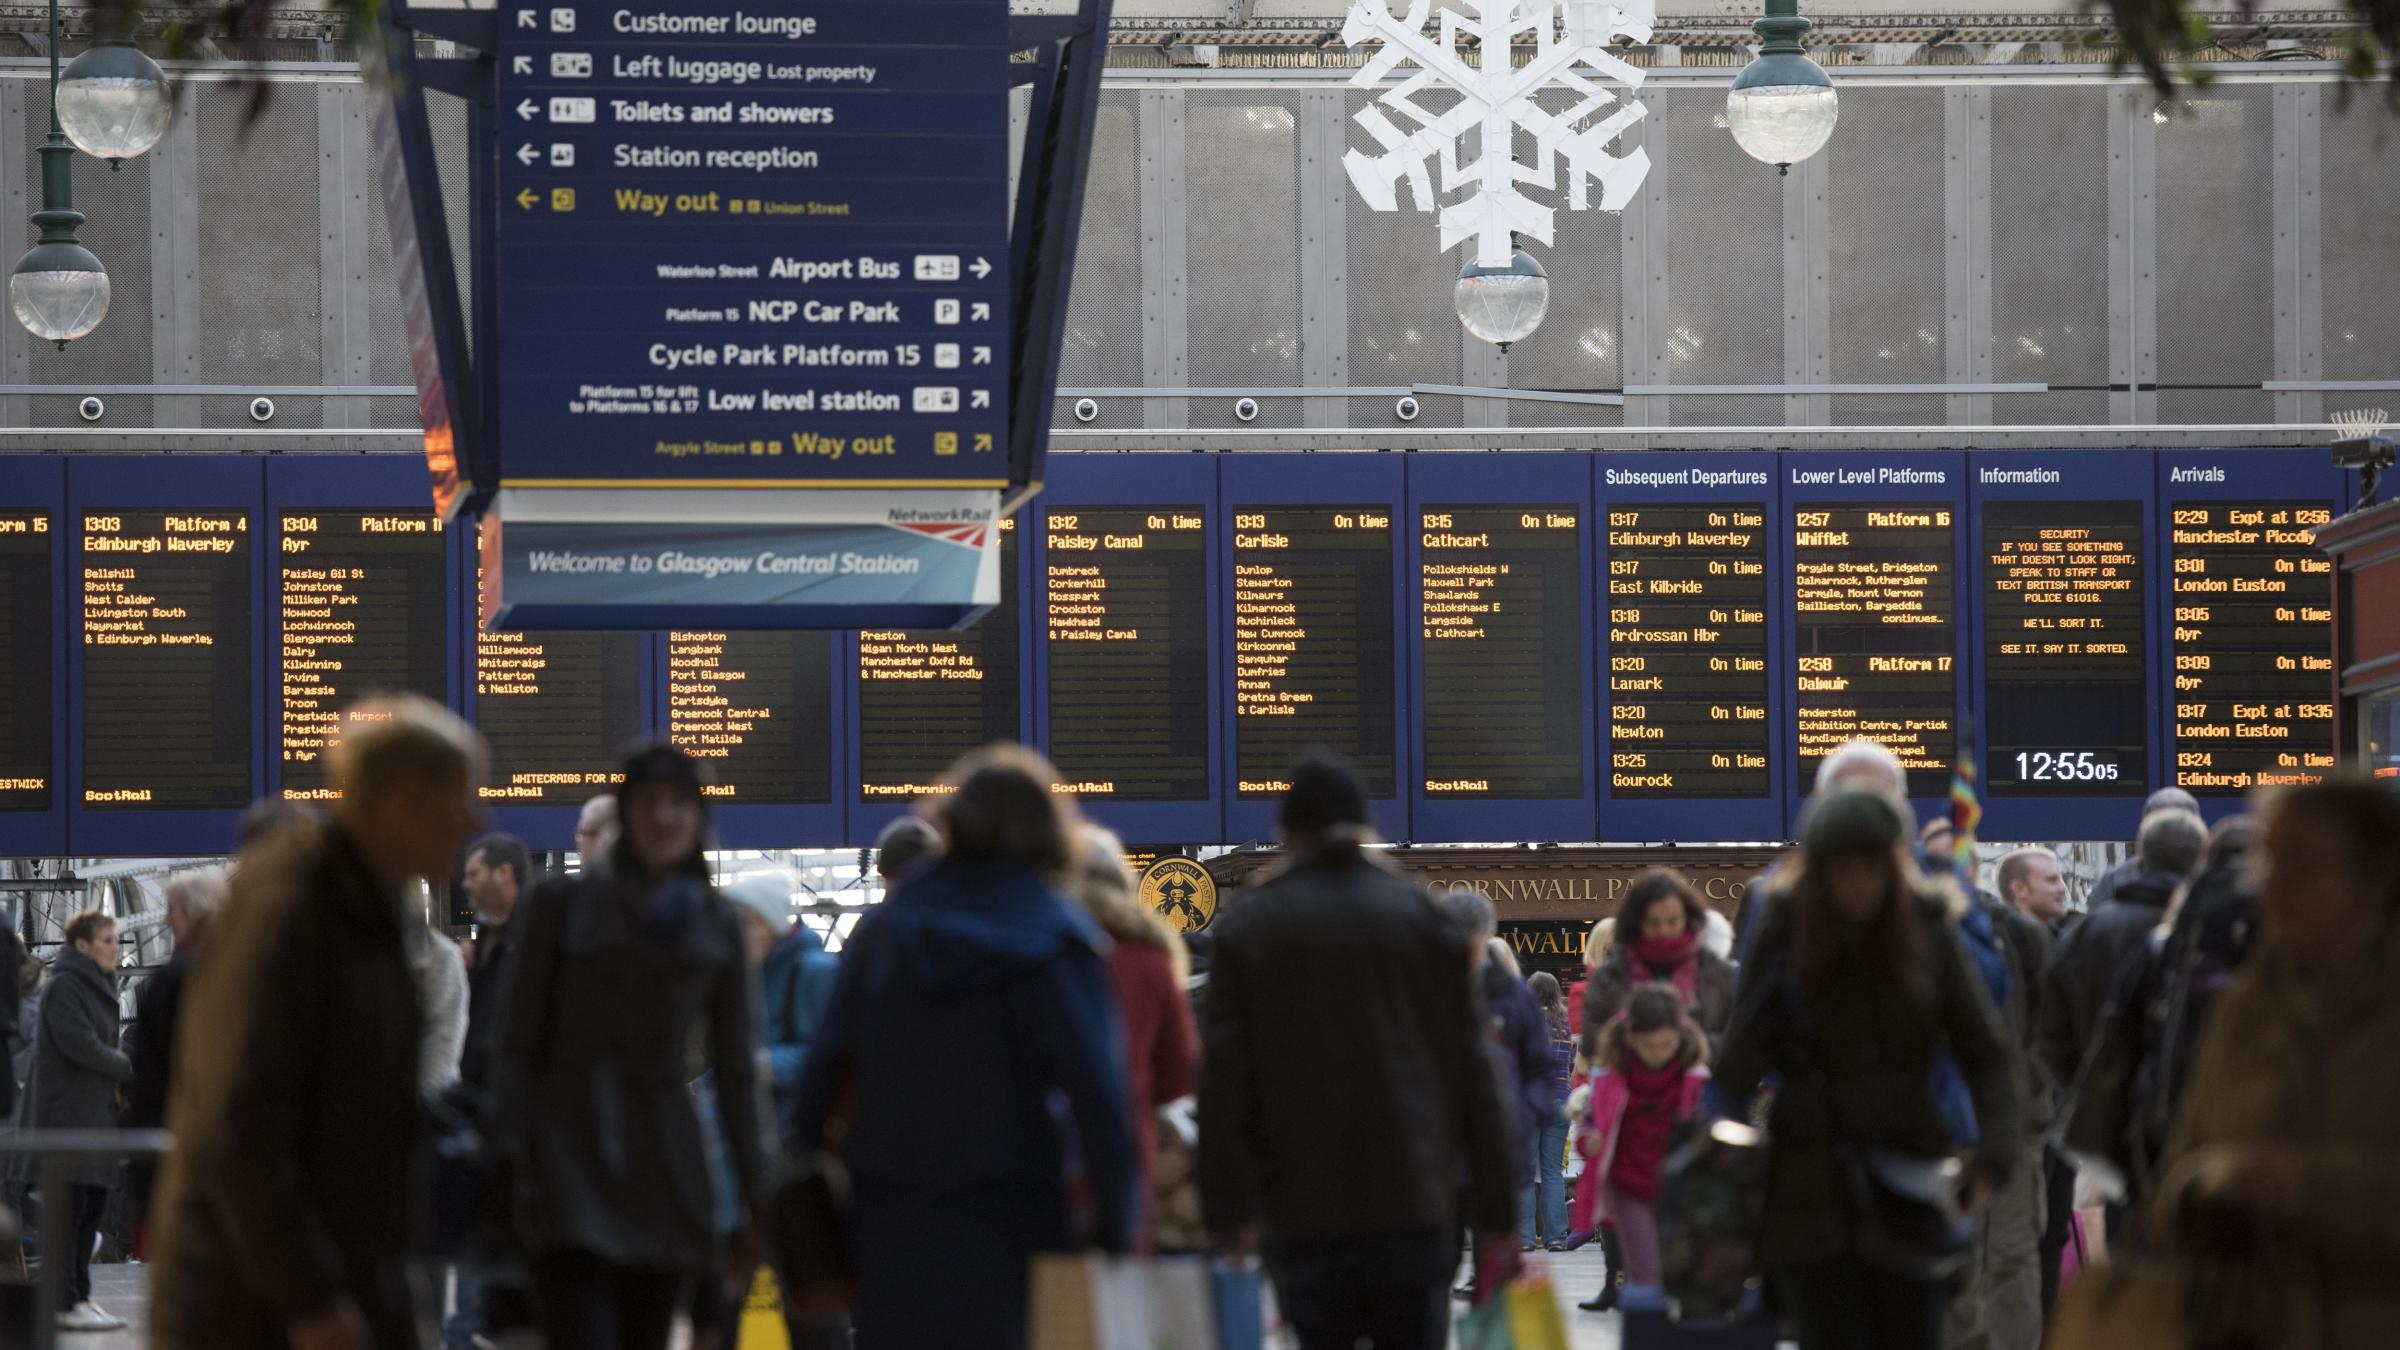 'We know you deserve better': ScotRail offers extra compensation for worst-hit customers amid travel chaos